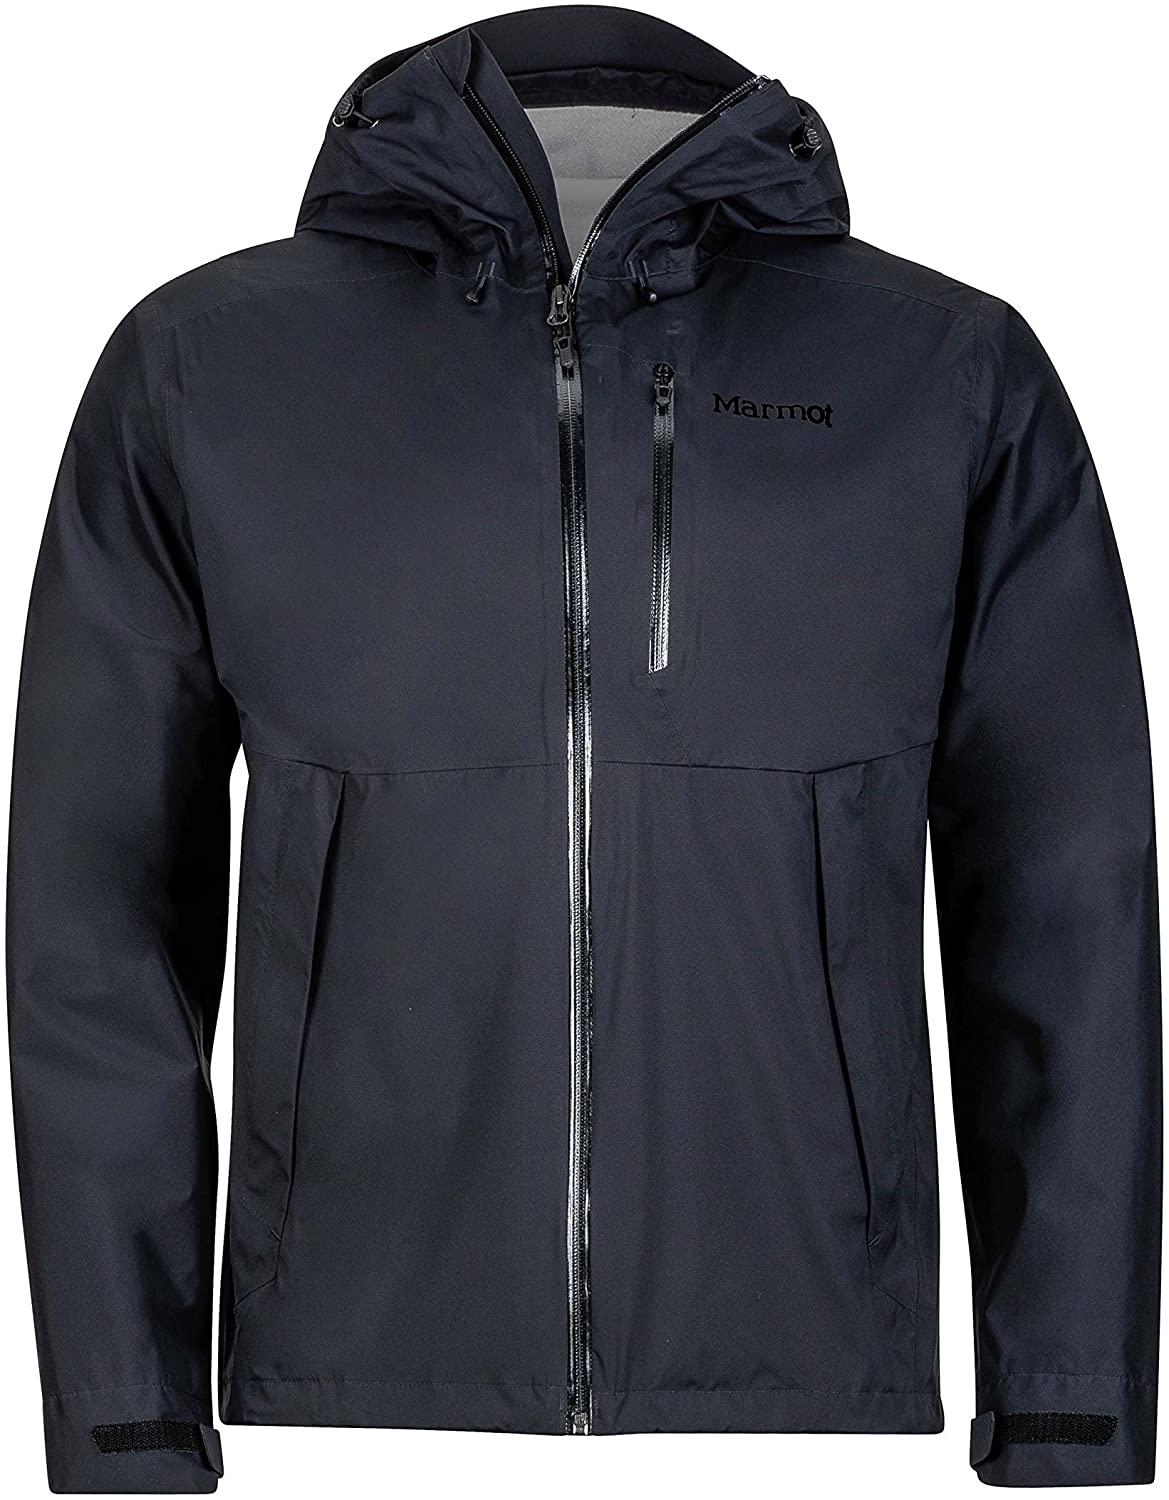 Marmot Men's Magus Lightweight Waterproof Rain Jacket: Clothing